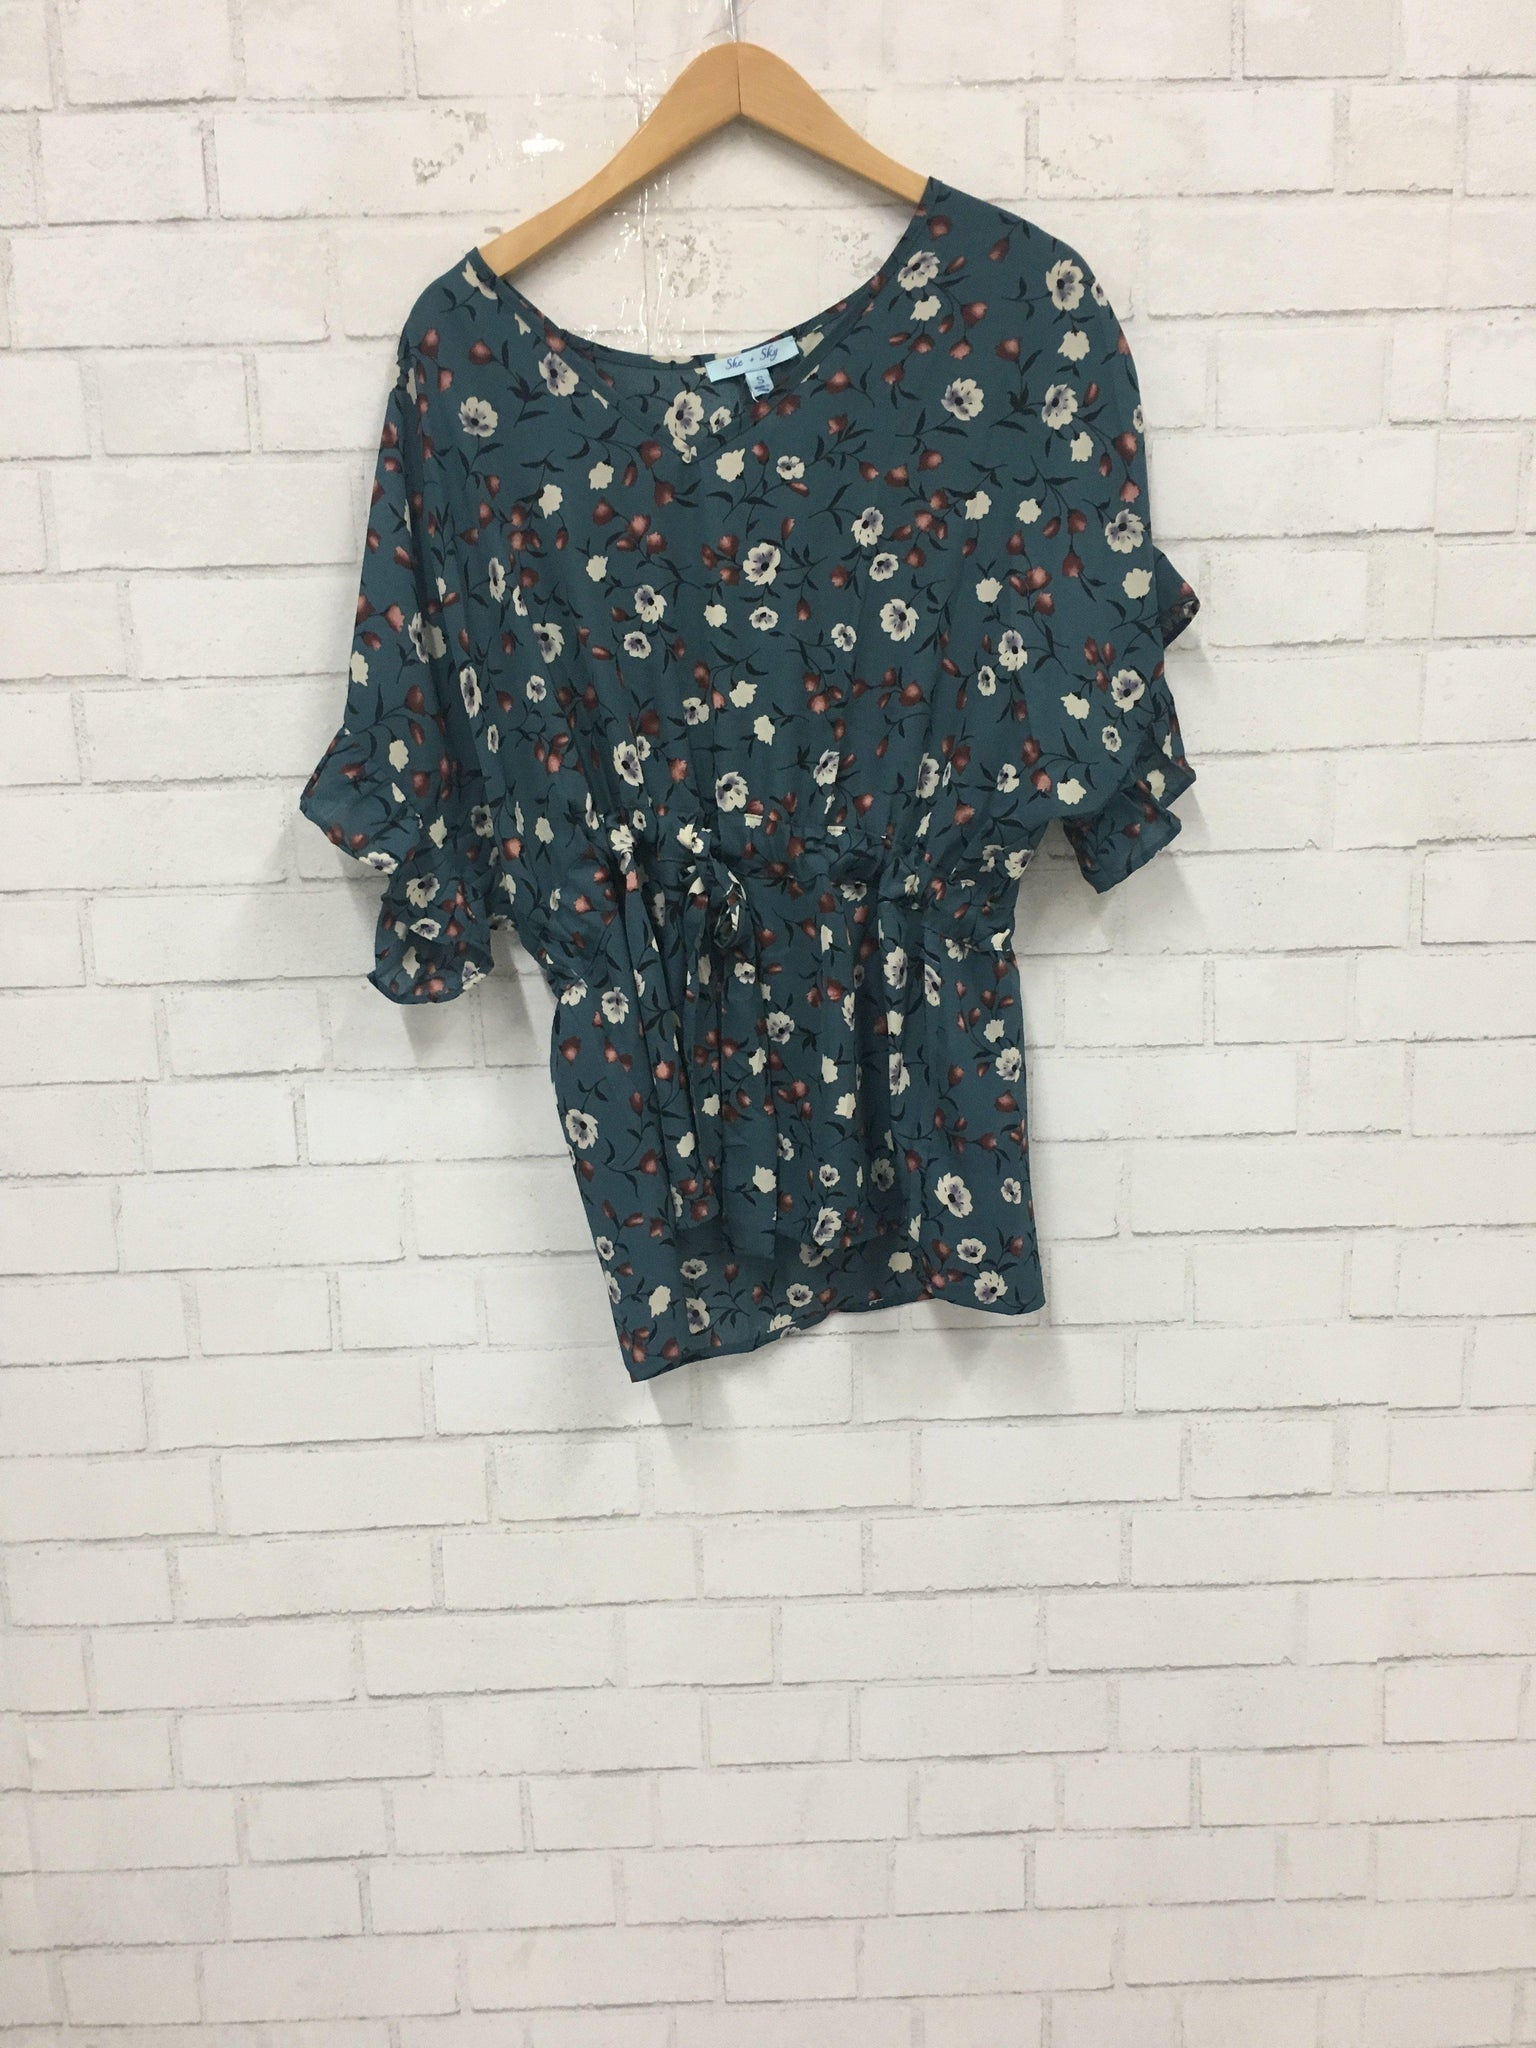 Teal Me You Love Me Top